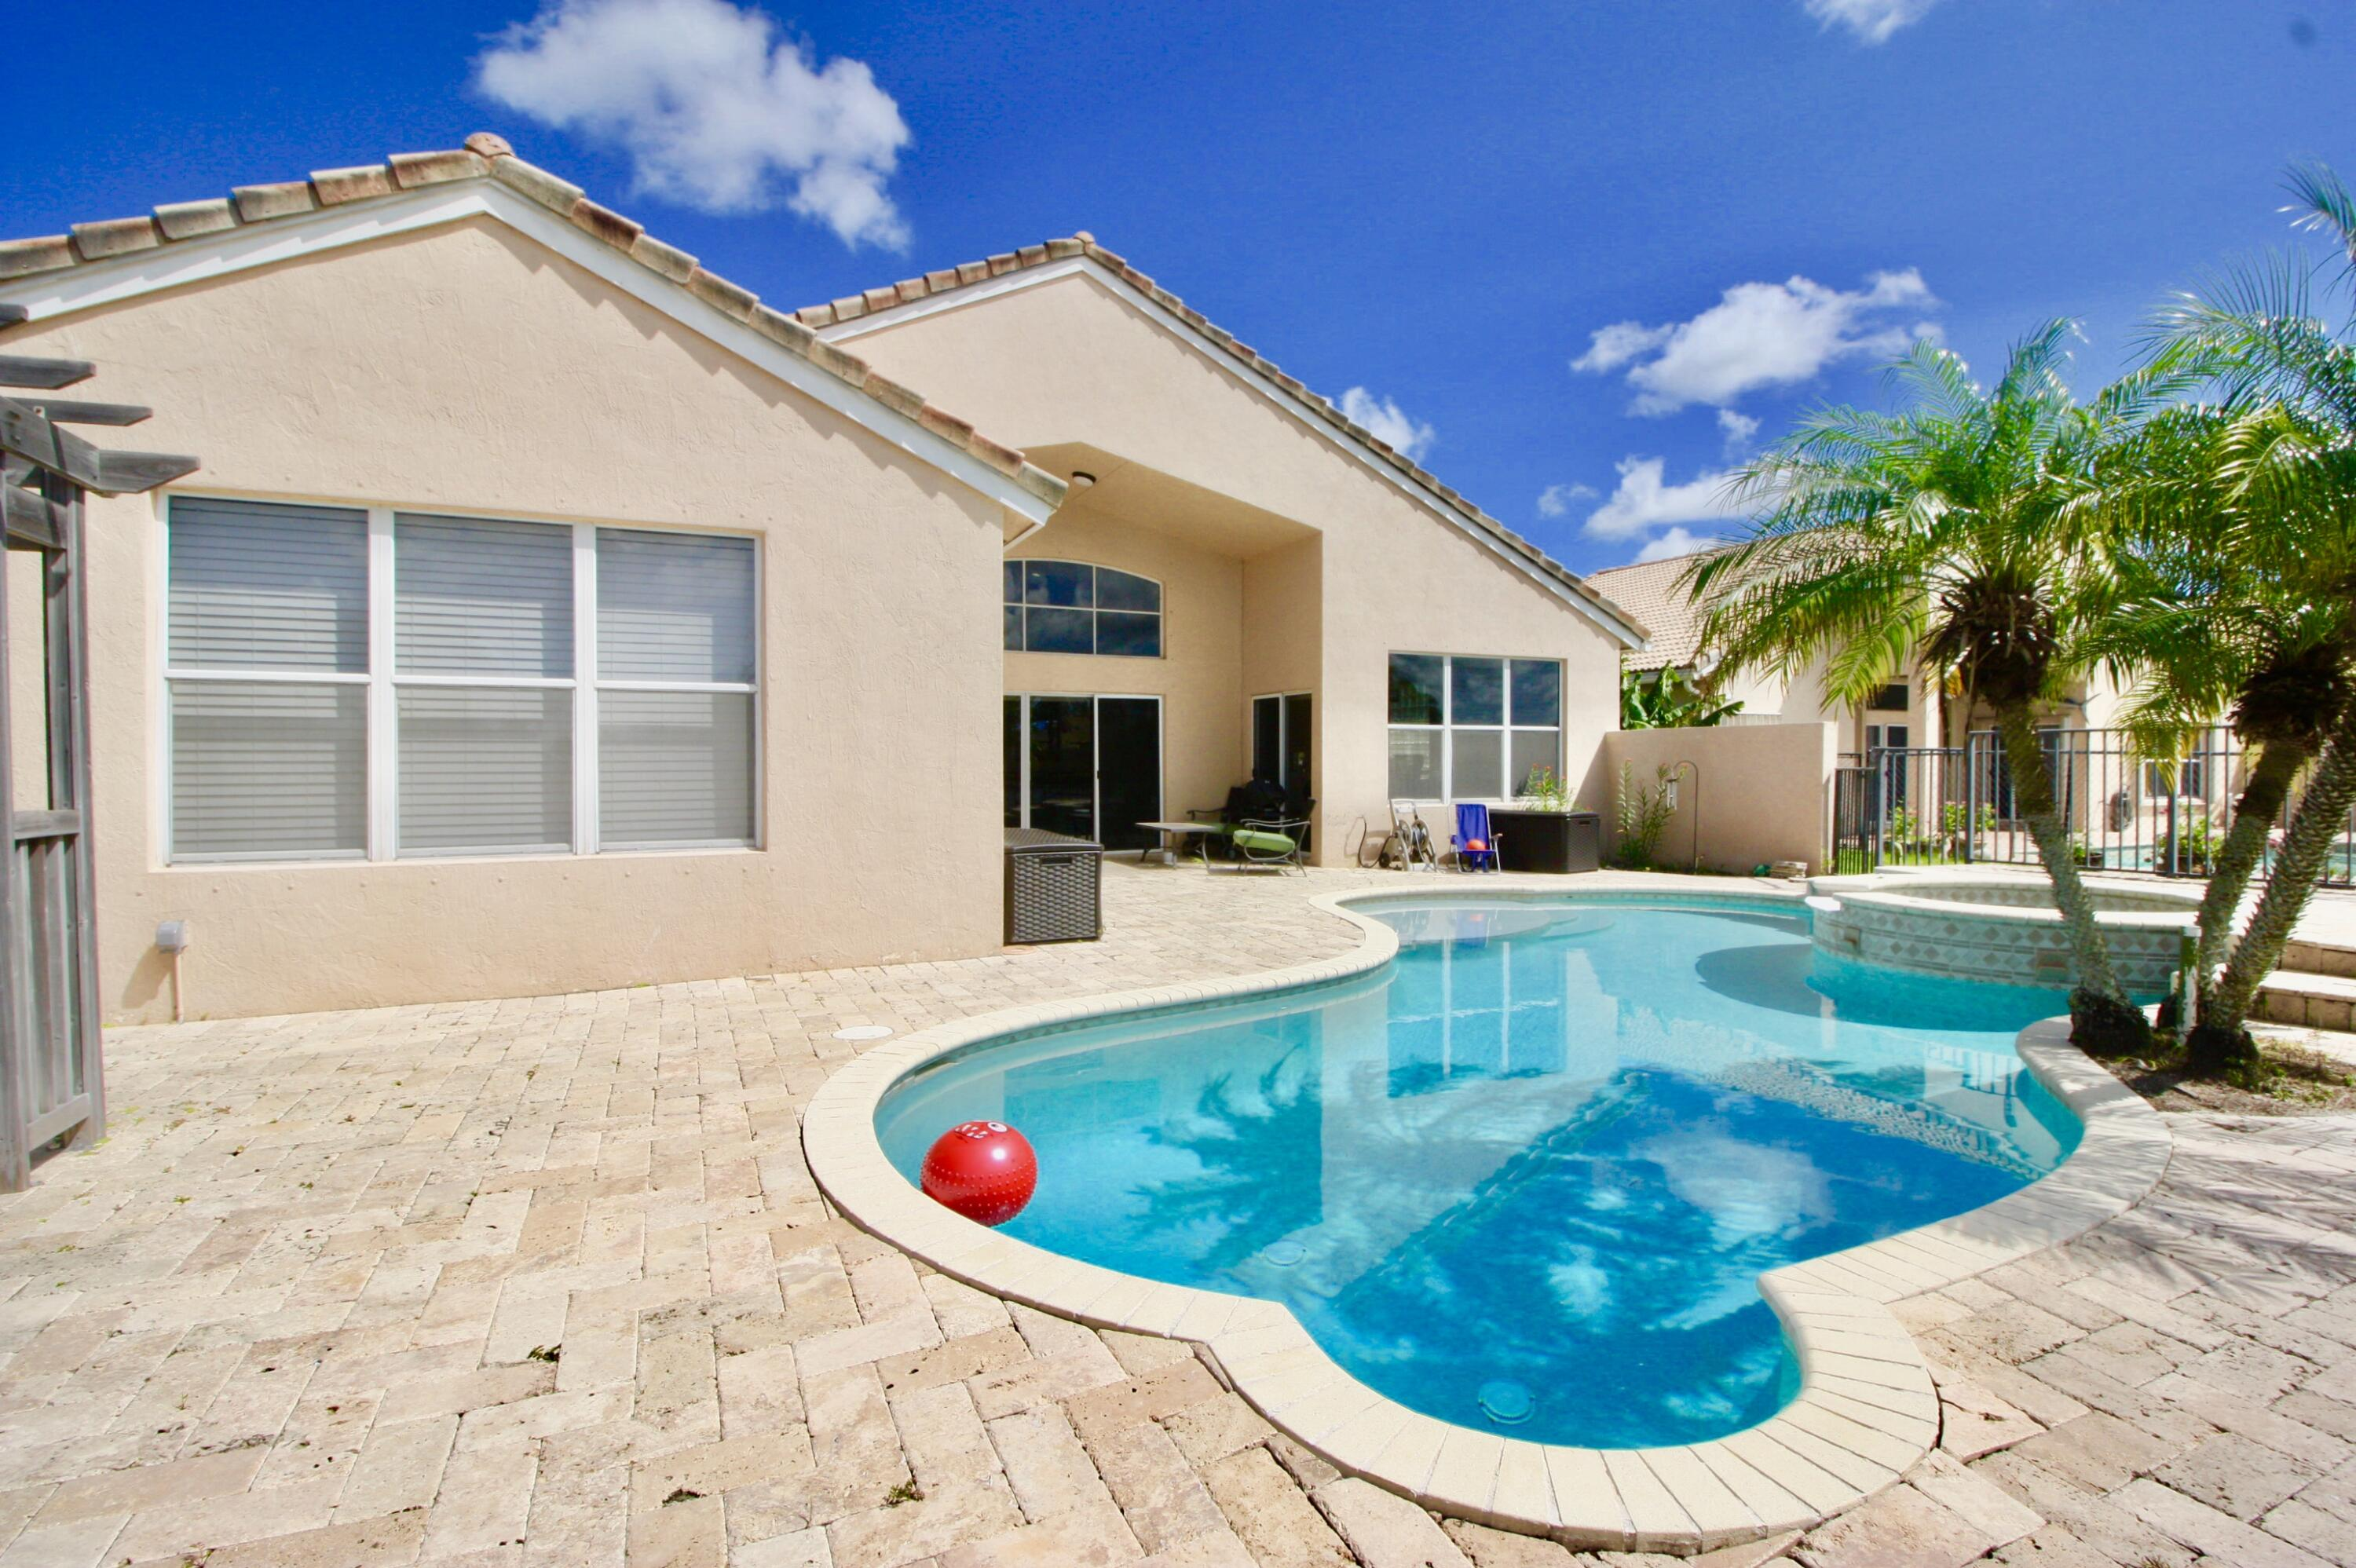 ENTERTAINING IS FUN WITH THIS POOL AREA!